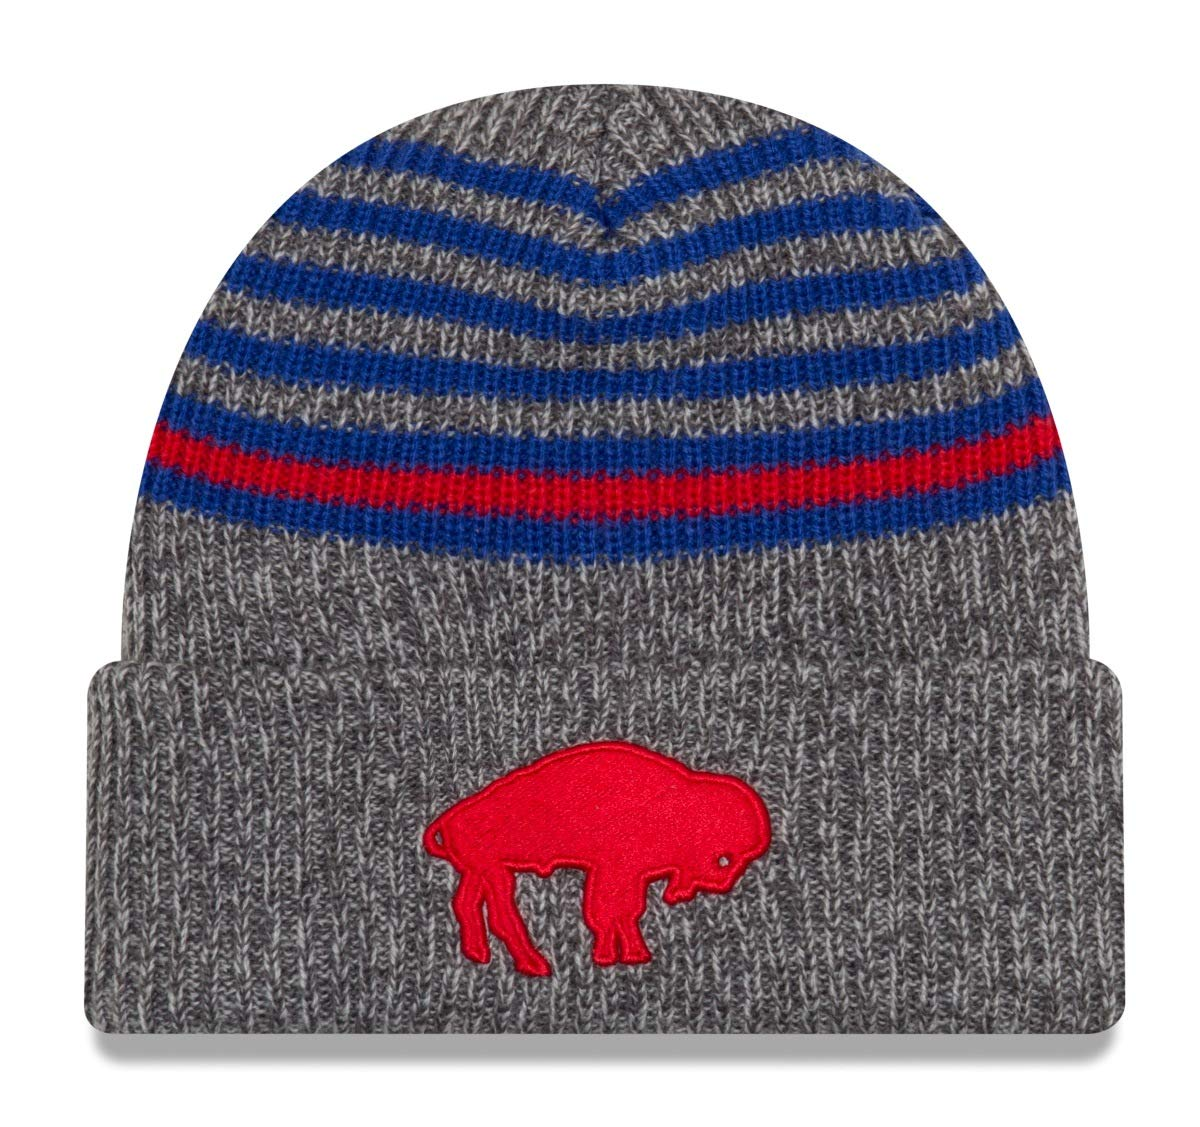 1a993180 Amazon.com : New Era Buffalo Bills Stripe Strong Cuffed Knit Hat/Cap ...